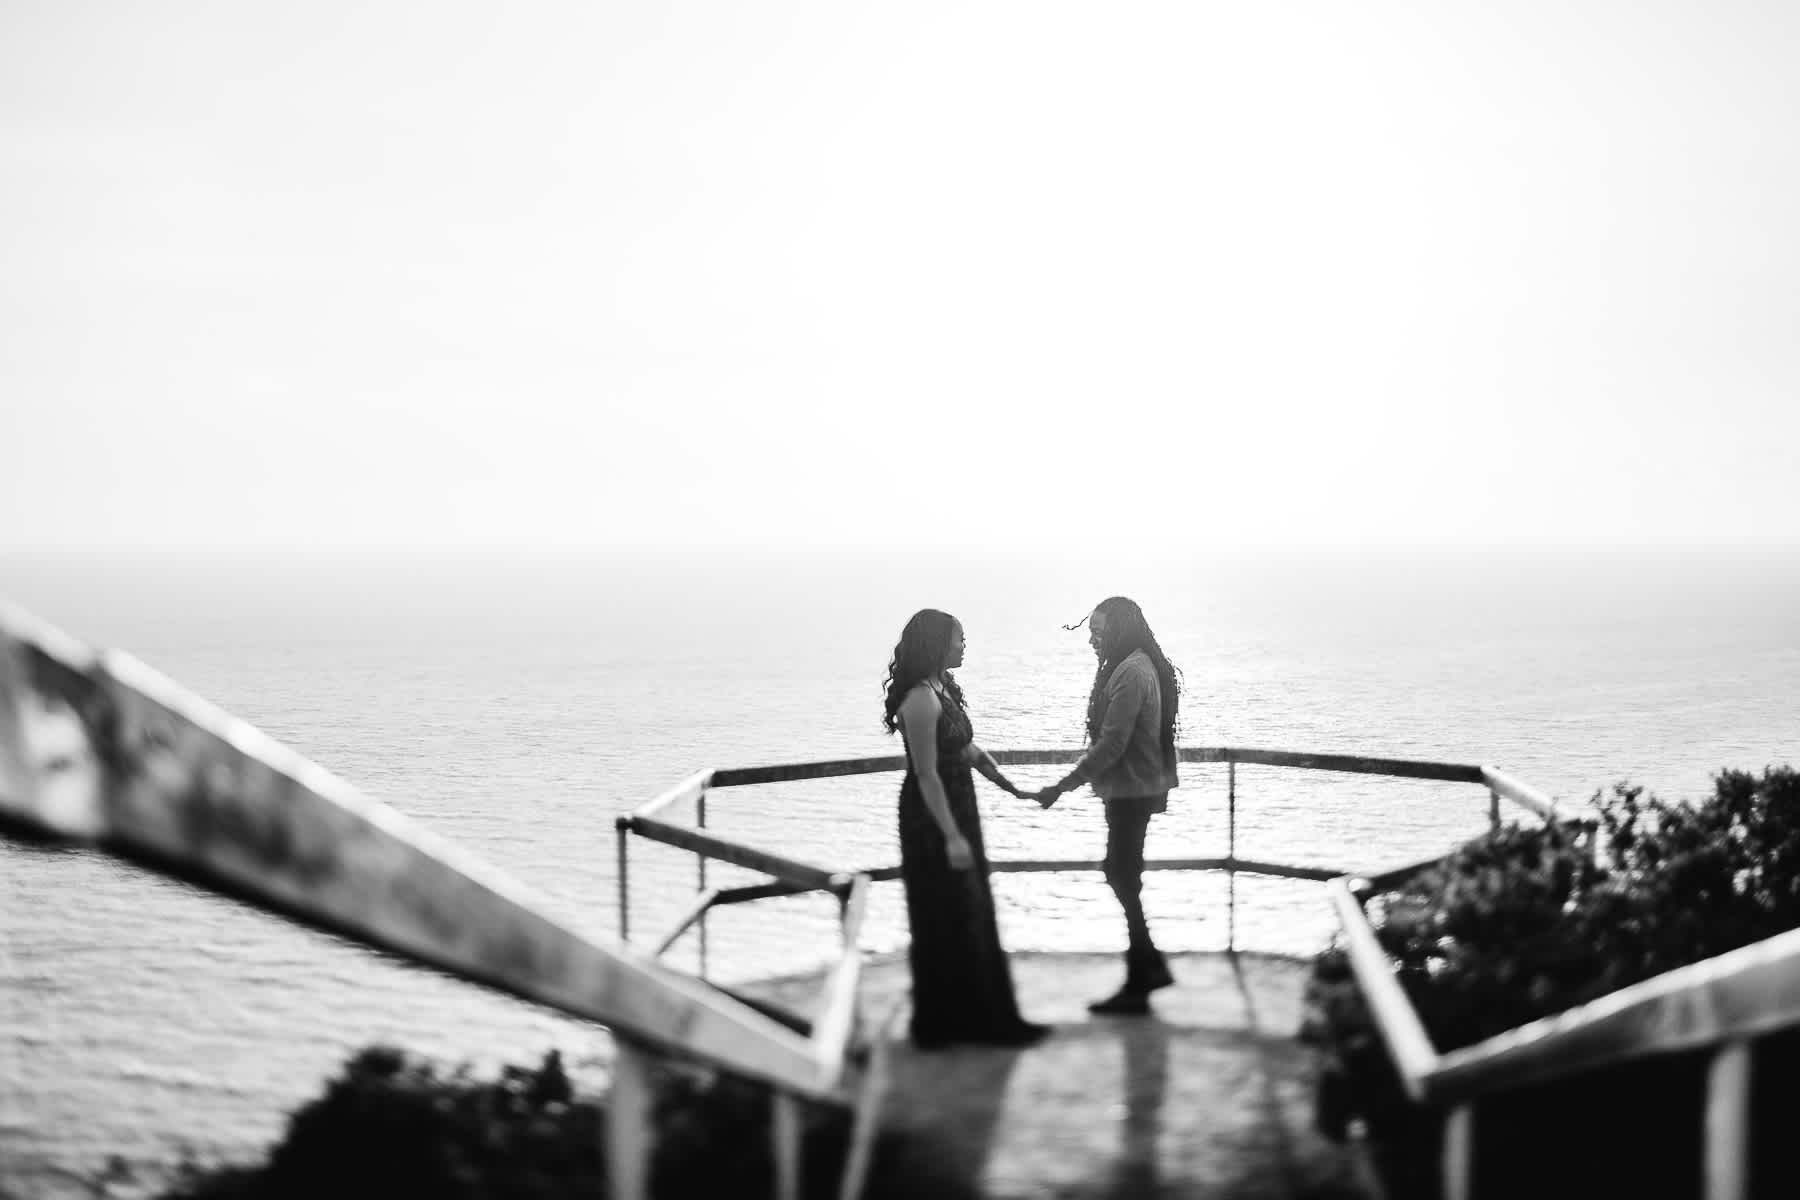 muir-beach-ca-spring-lifestyle-engagement-session-15